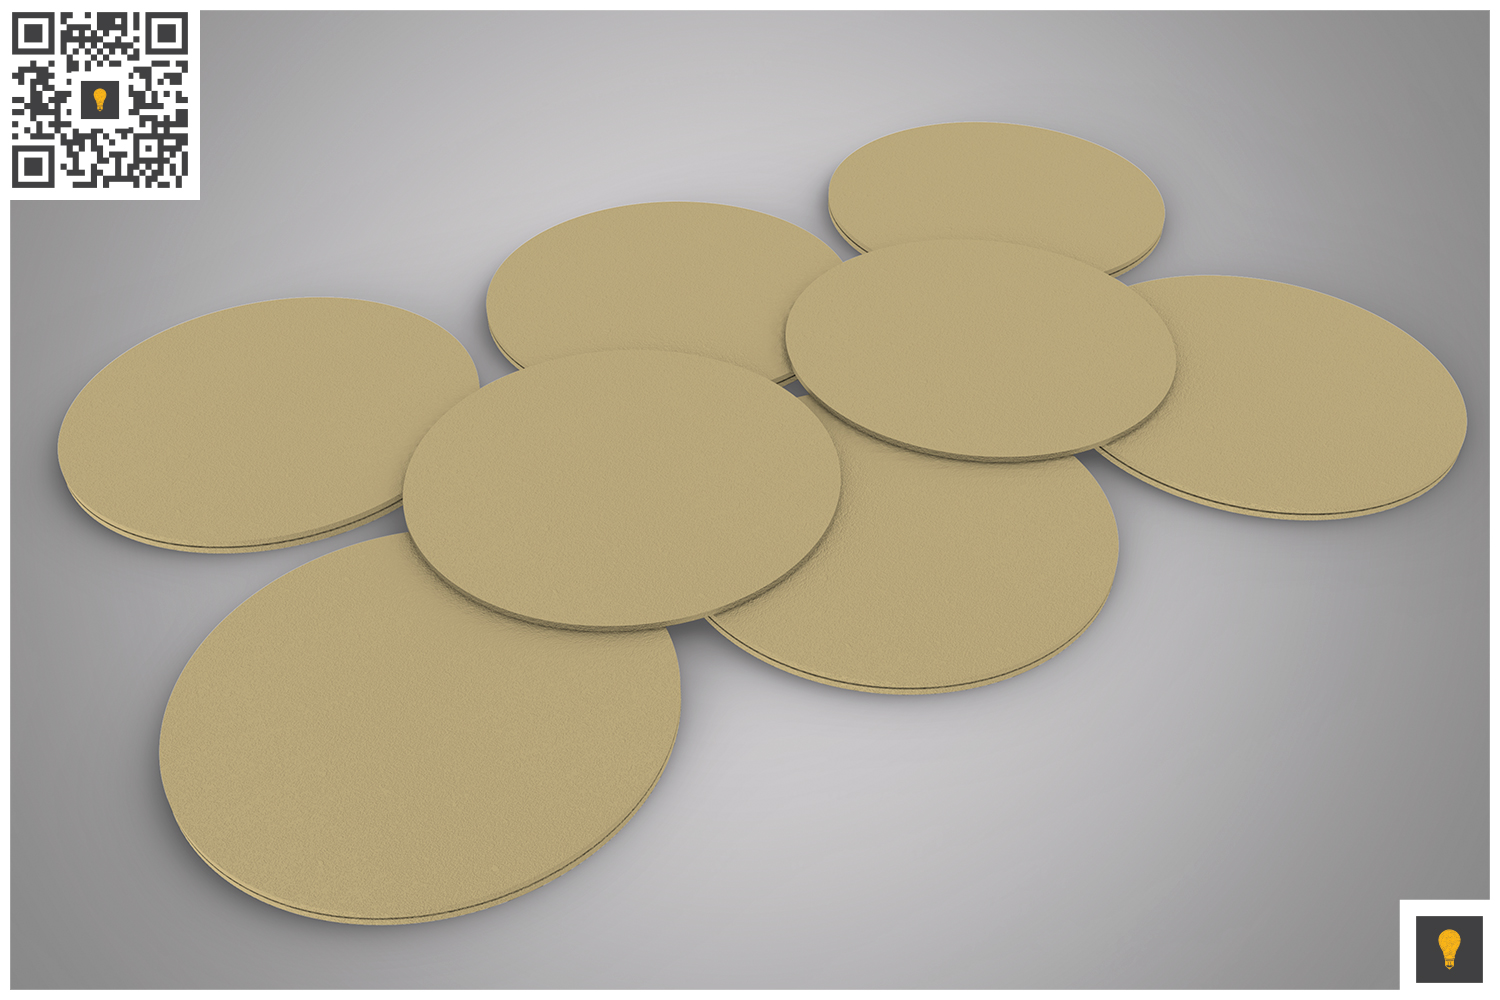 Paper Coaster 3D Render example image 7